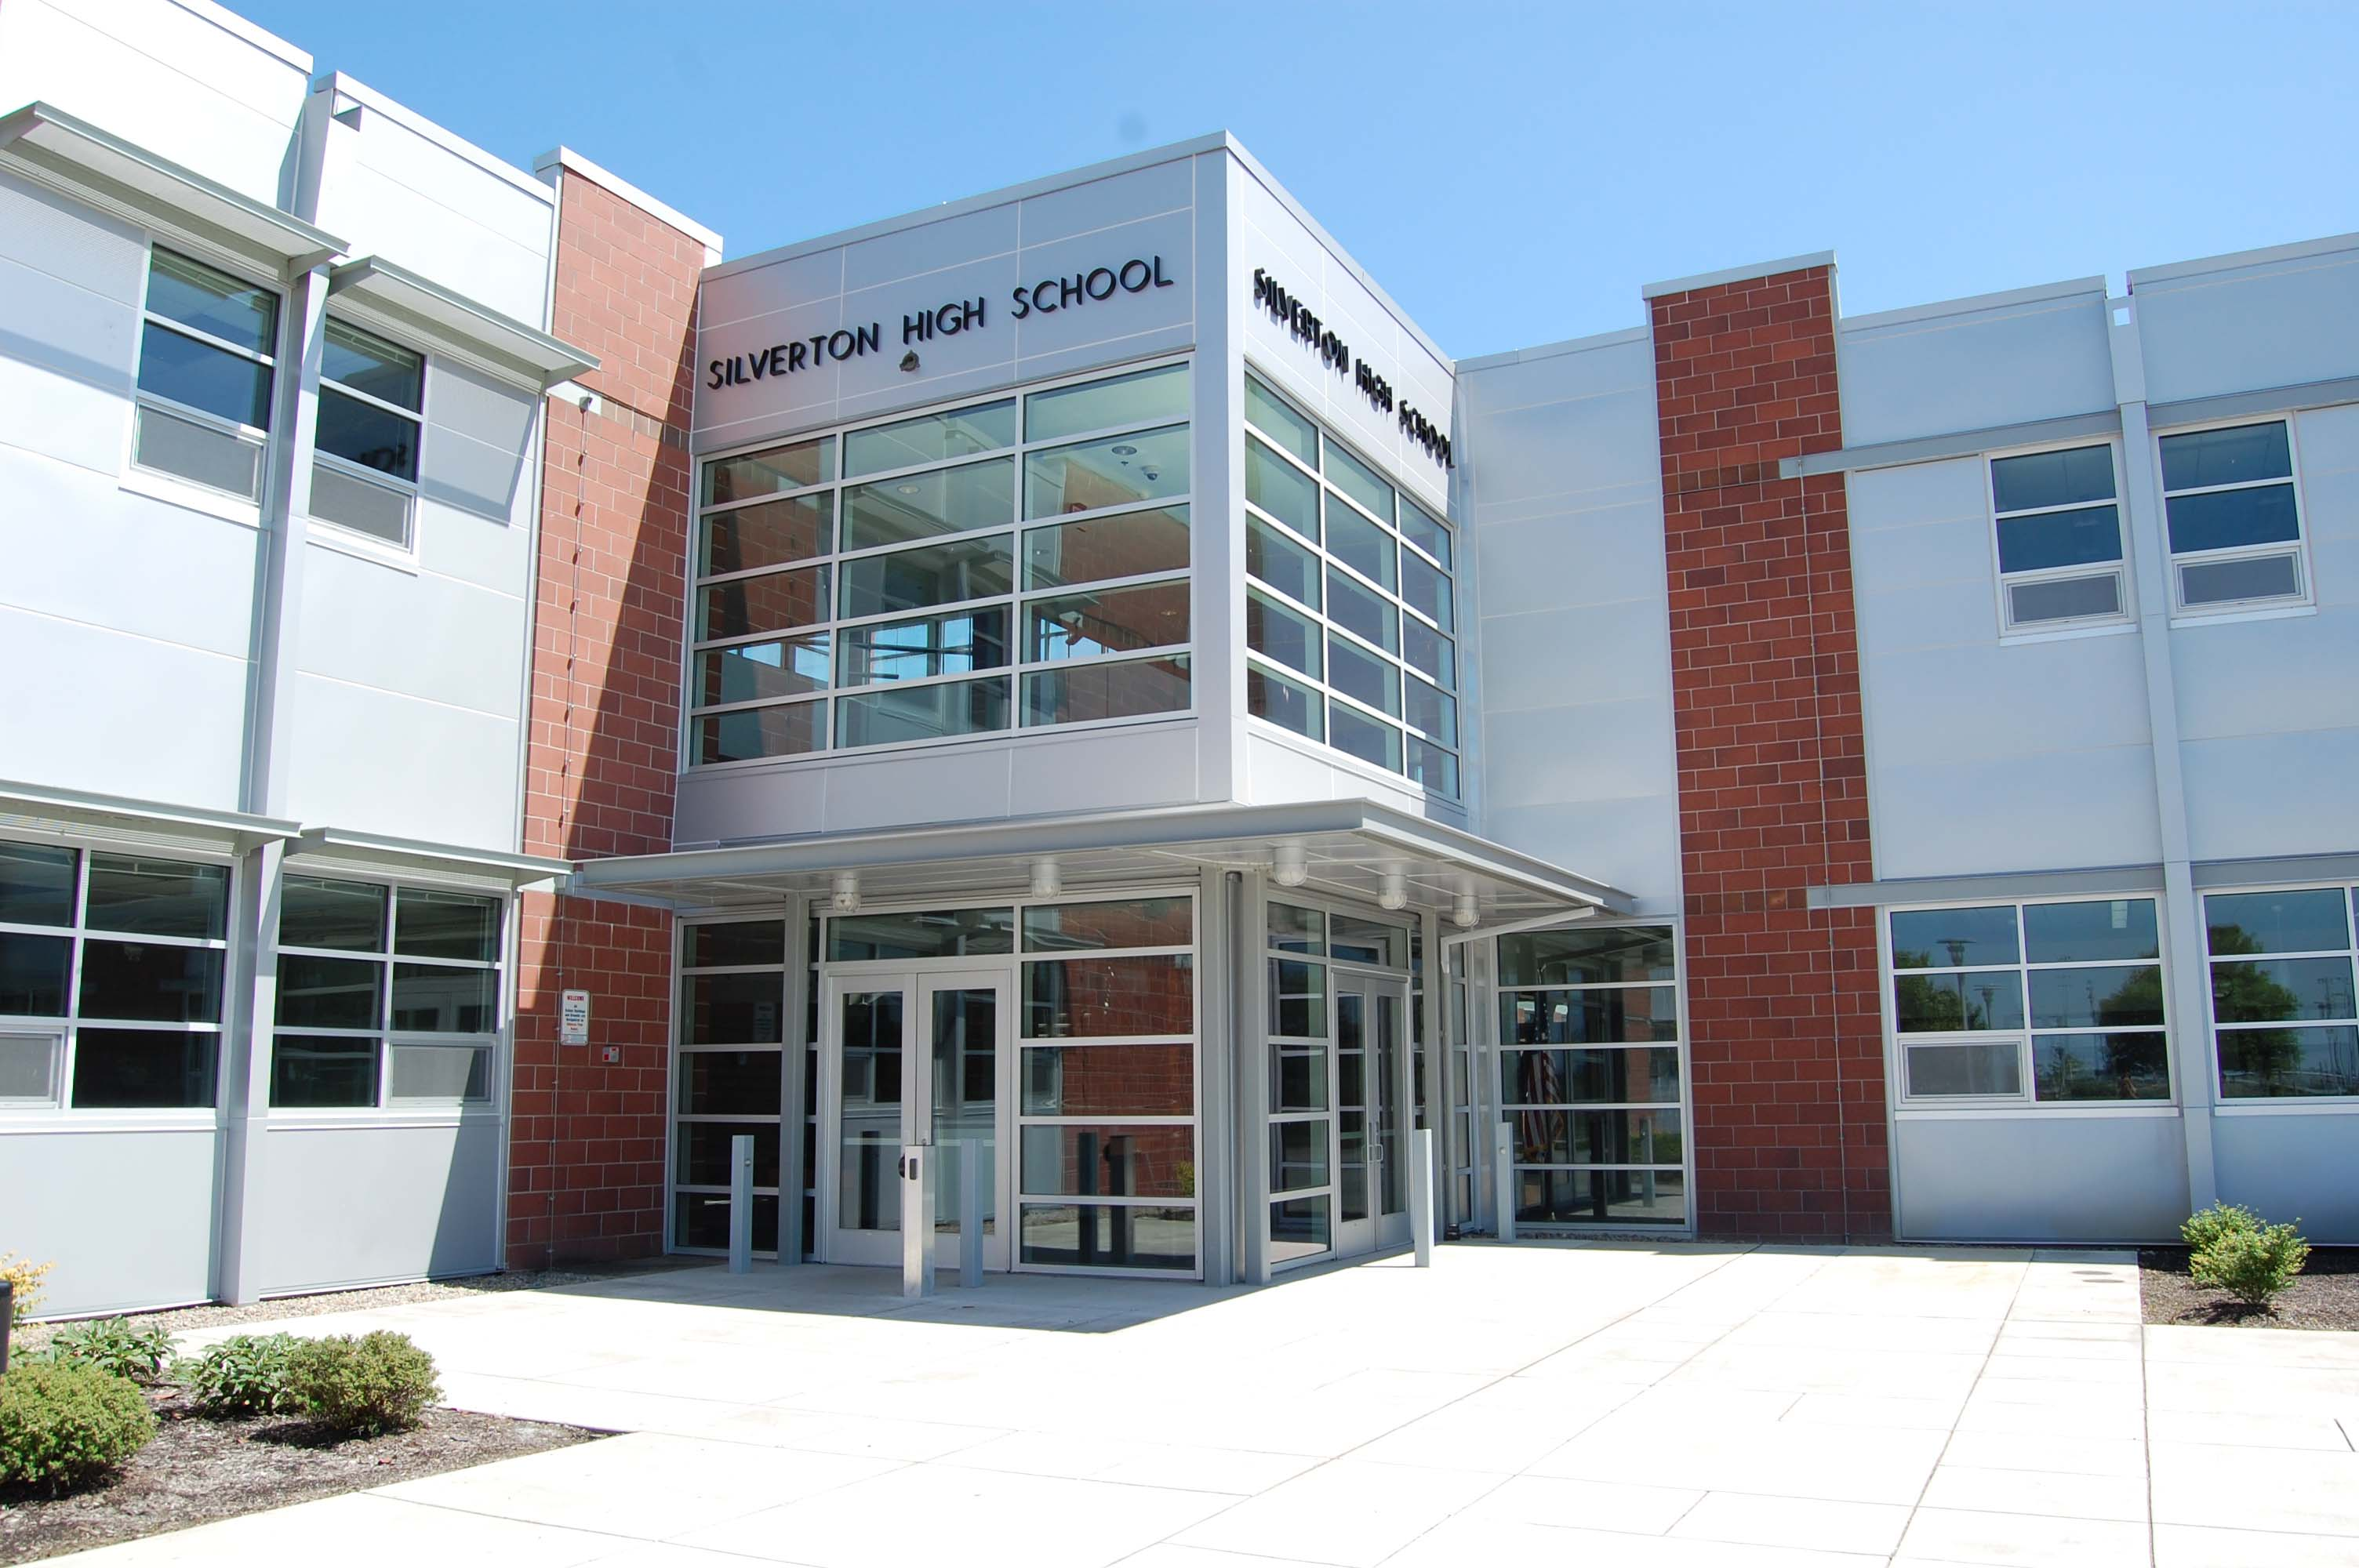 Jvc News Release Silverton High School Protects